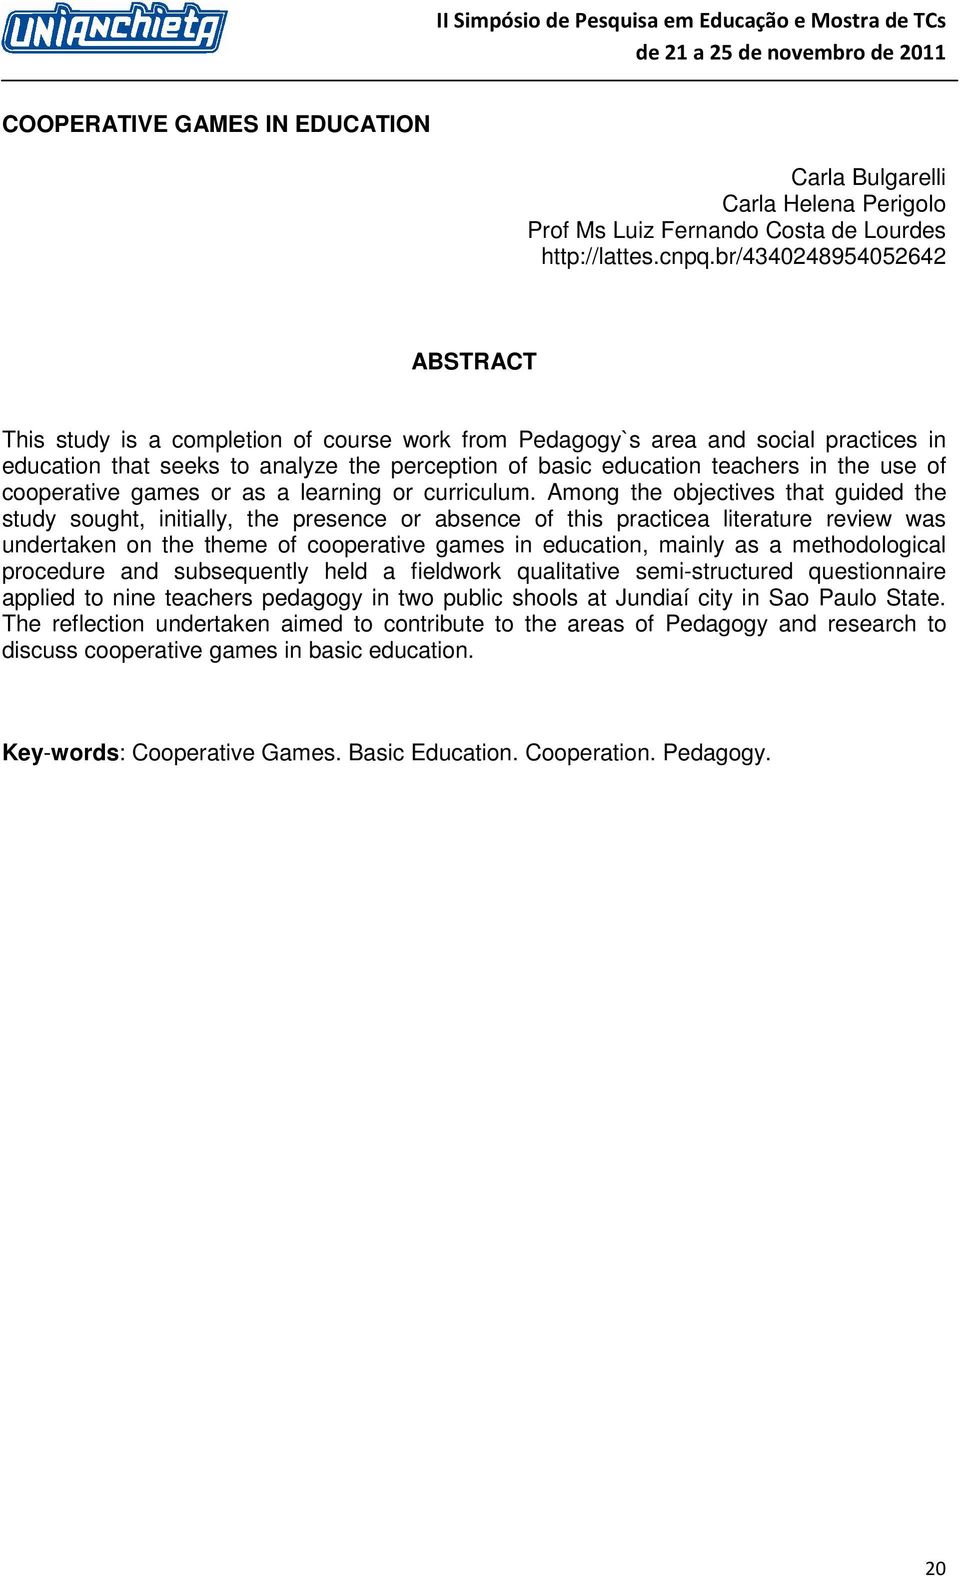 Among the objectives that guided the study sought, initially, the presence or absence of this practicea literature review was undertaken on the theme of cooperative games in education, mainly as a